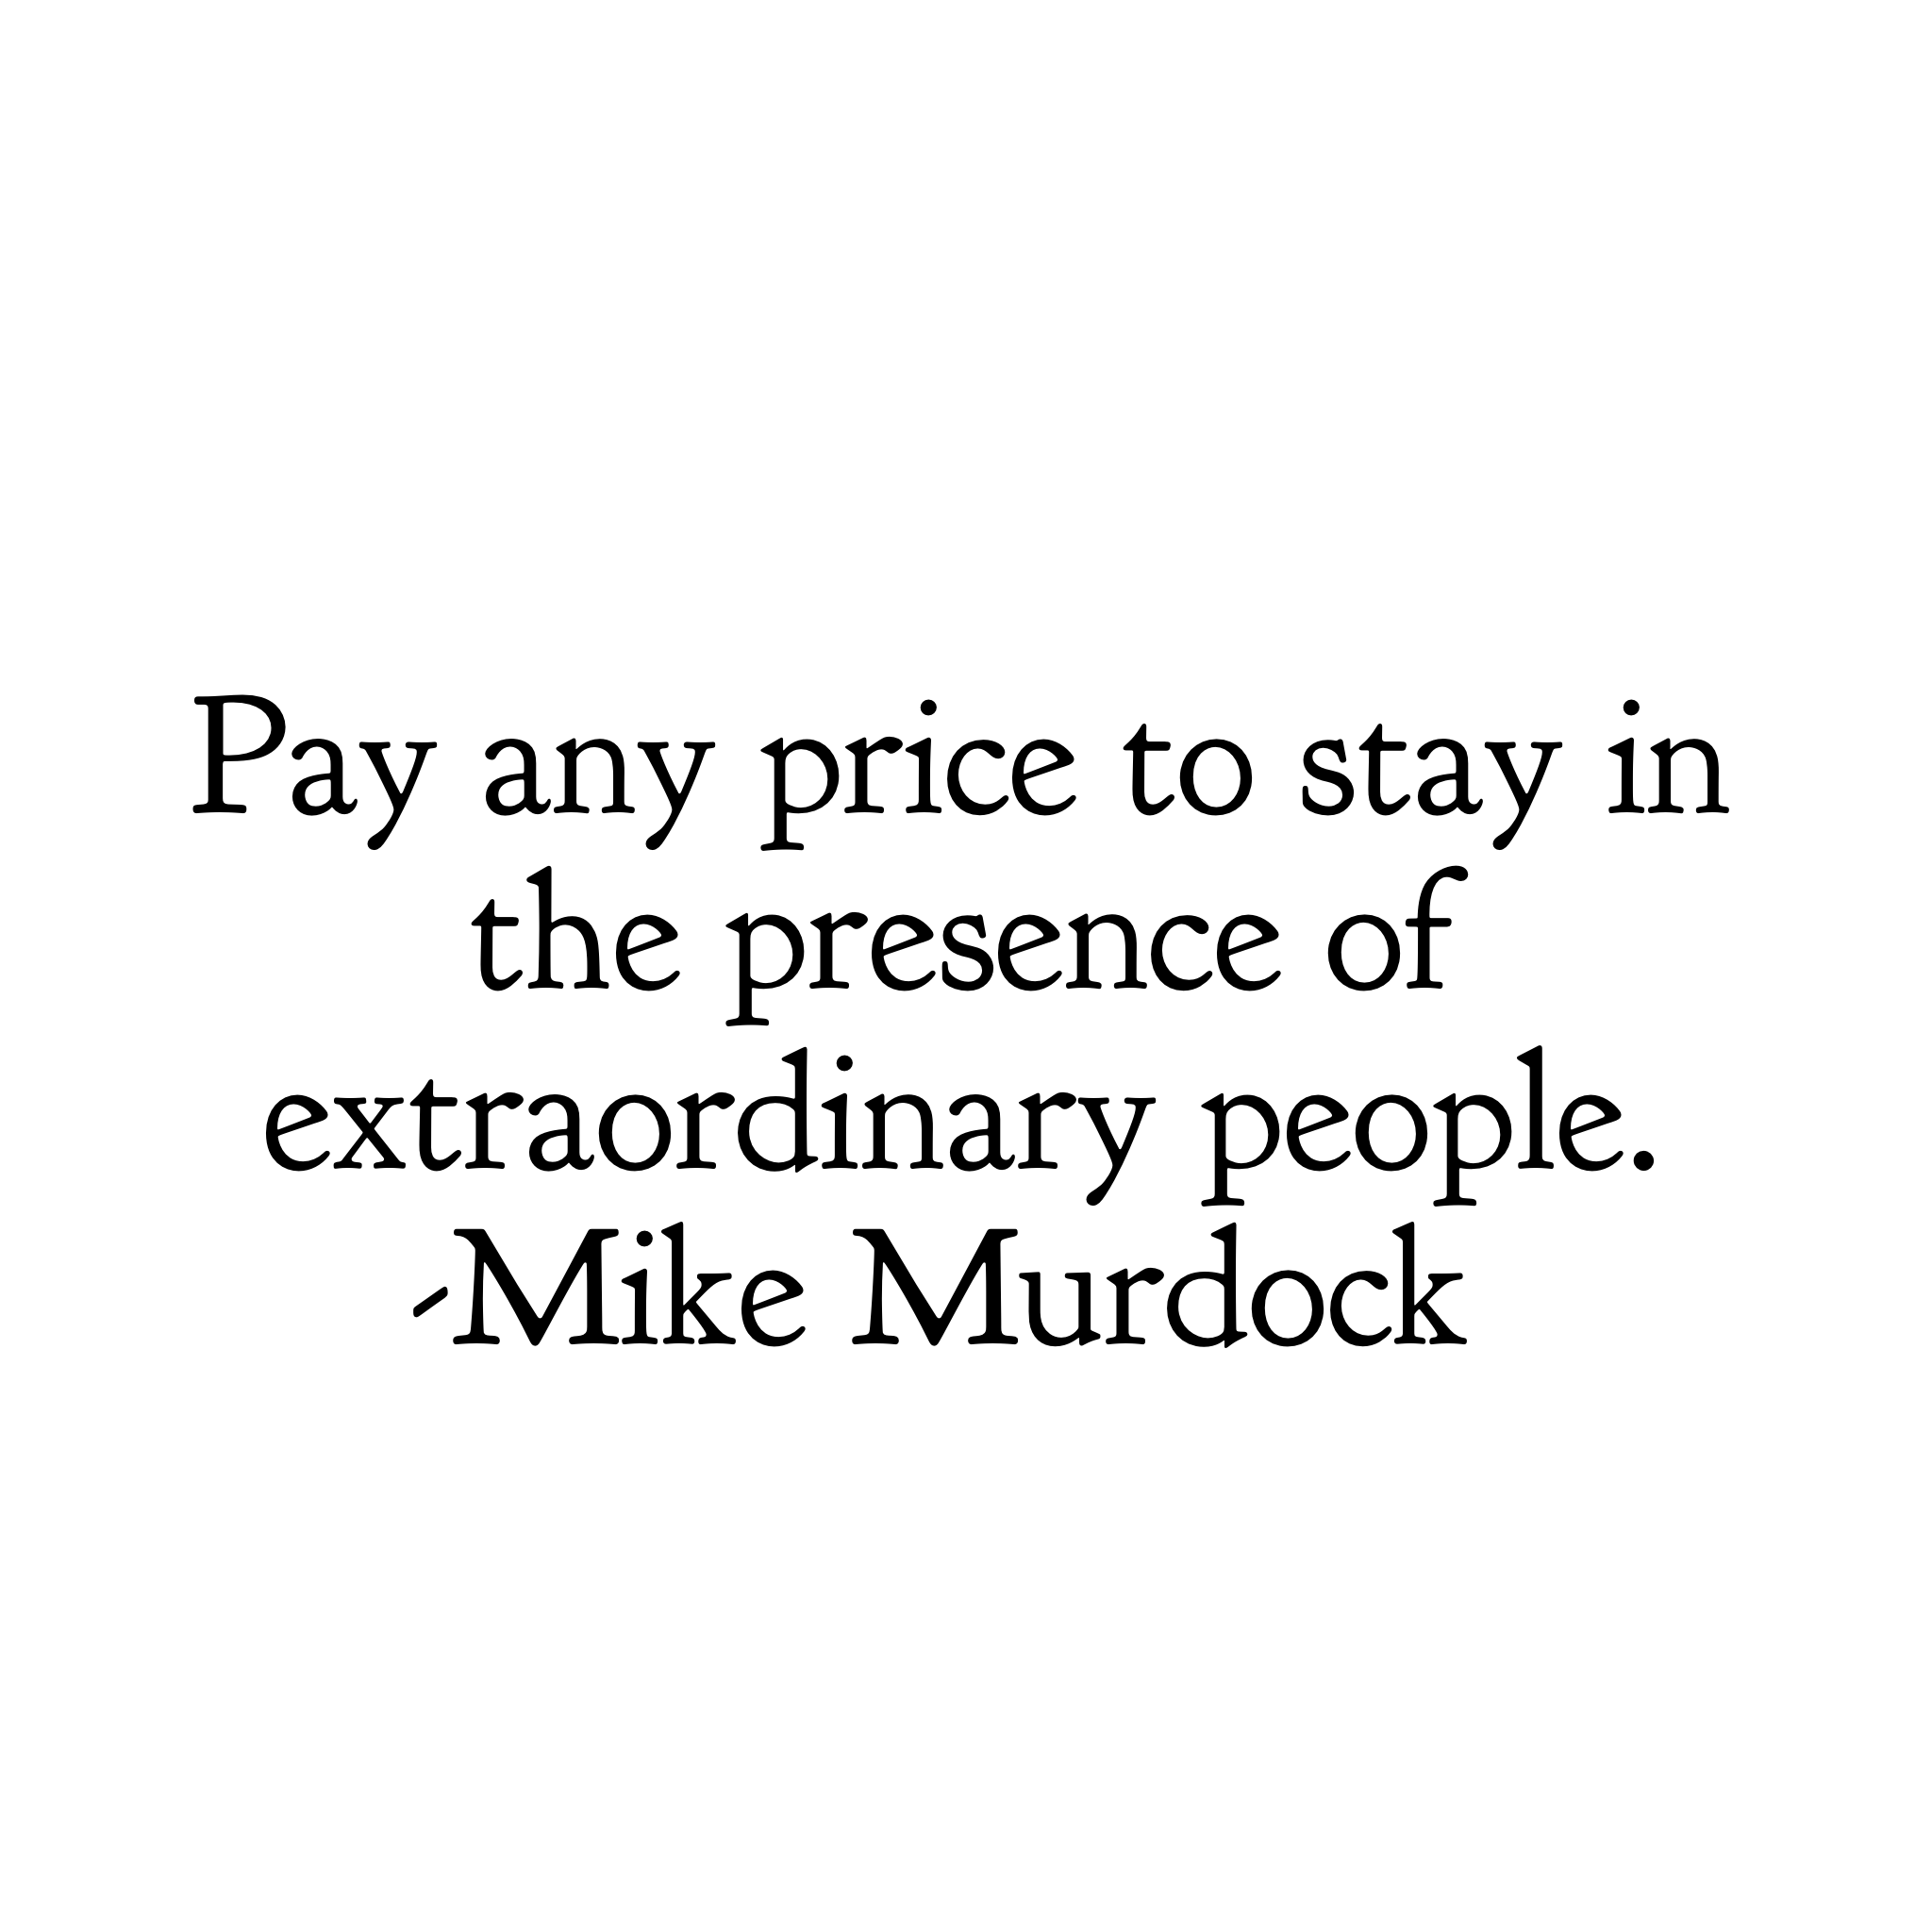 Pay any price to stay in the presence of extraordinary people. -Mike Murdock